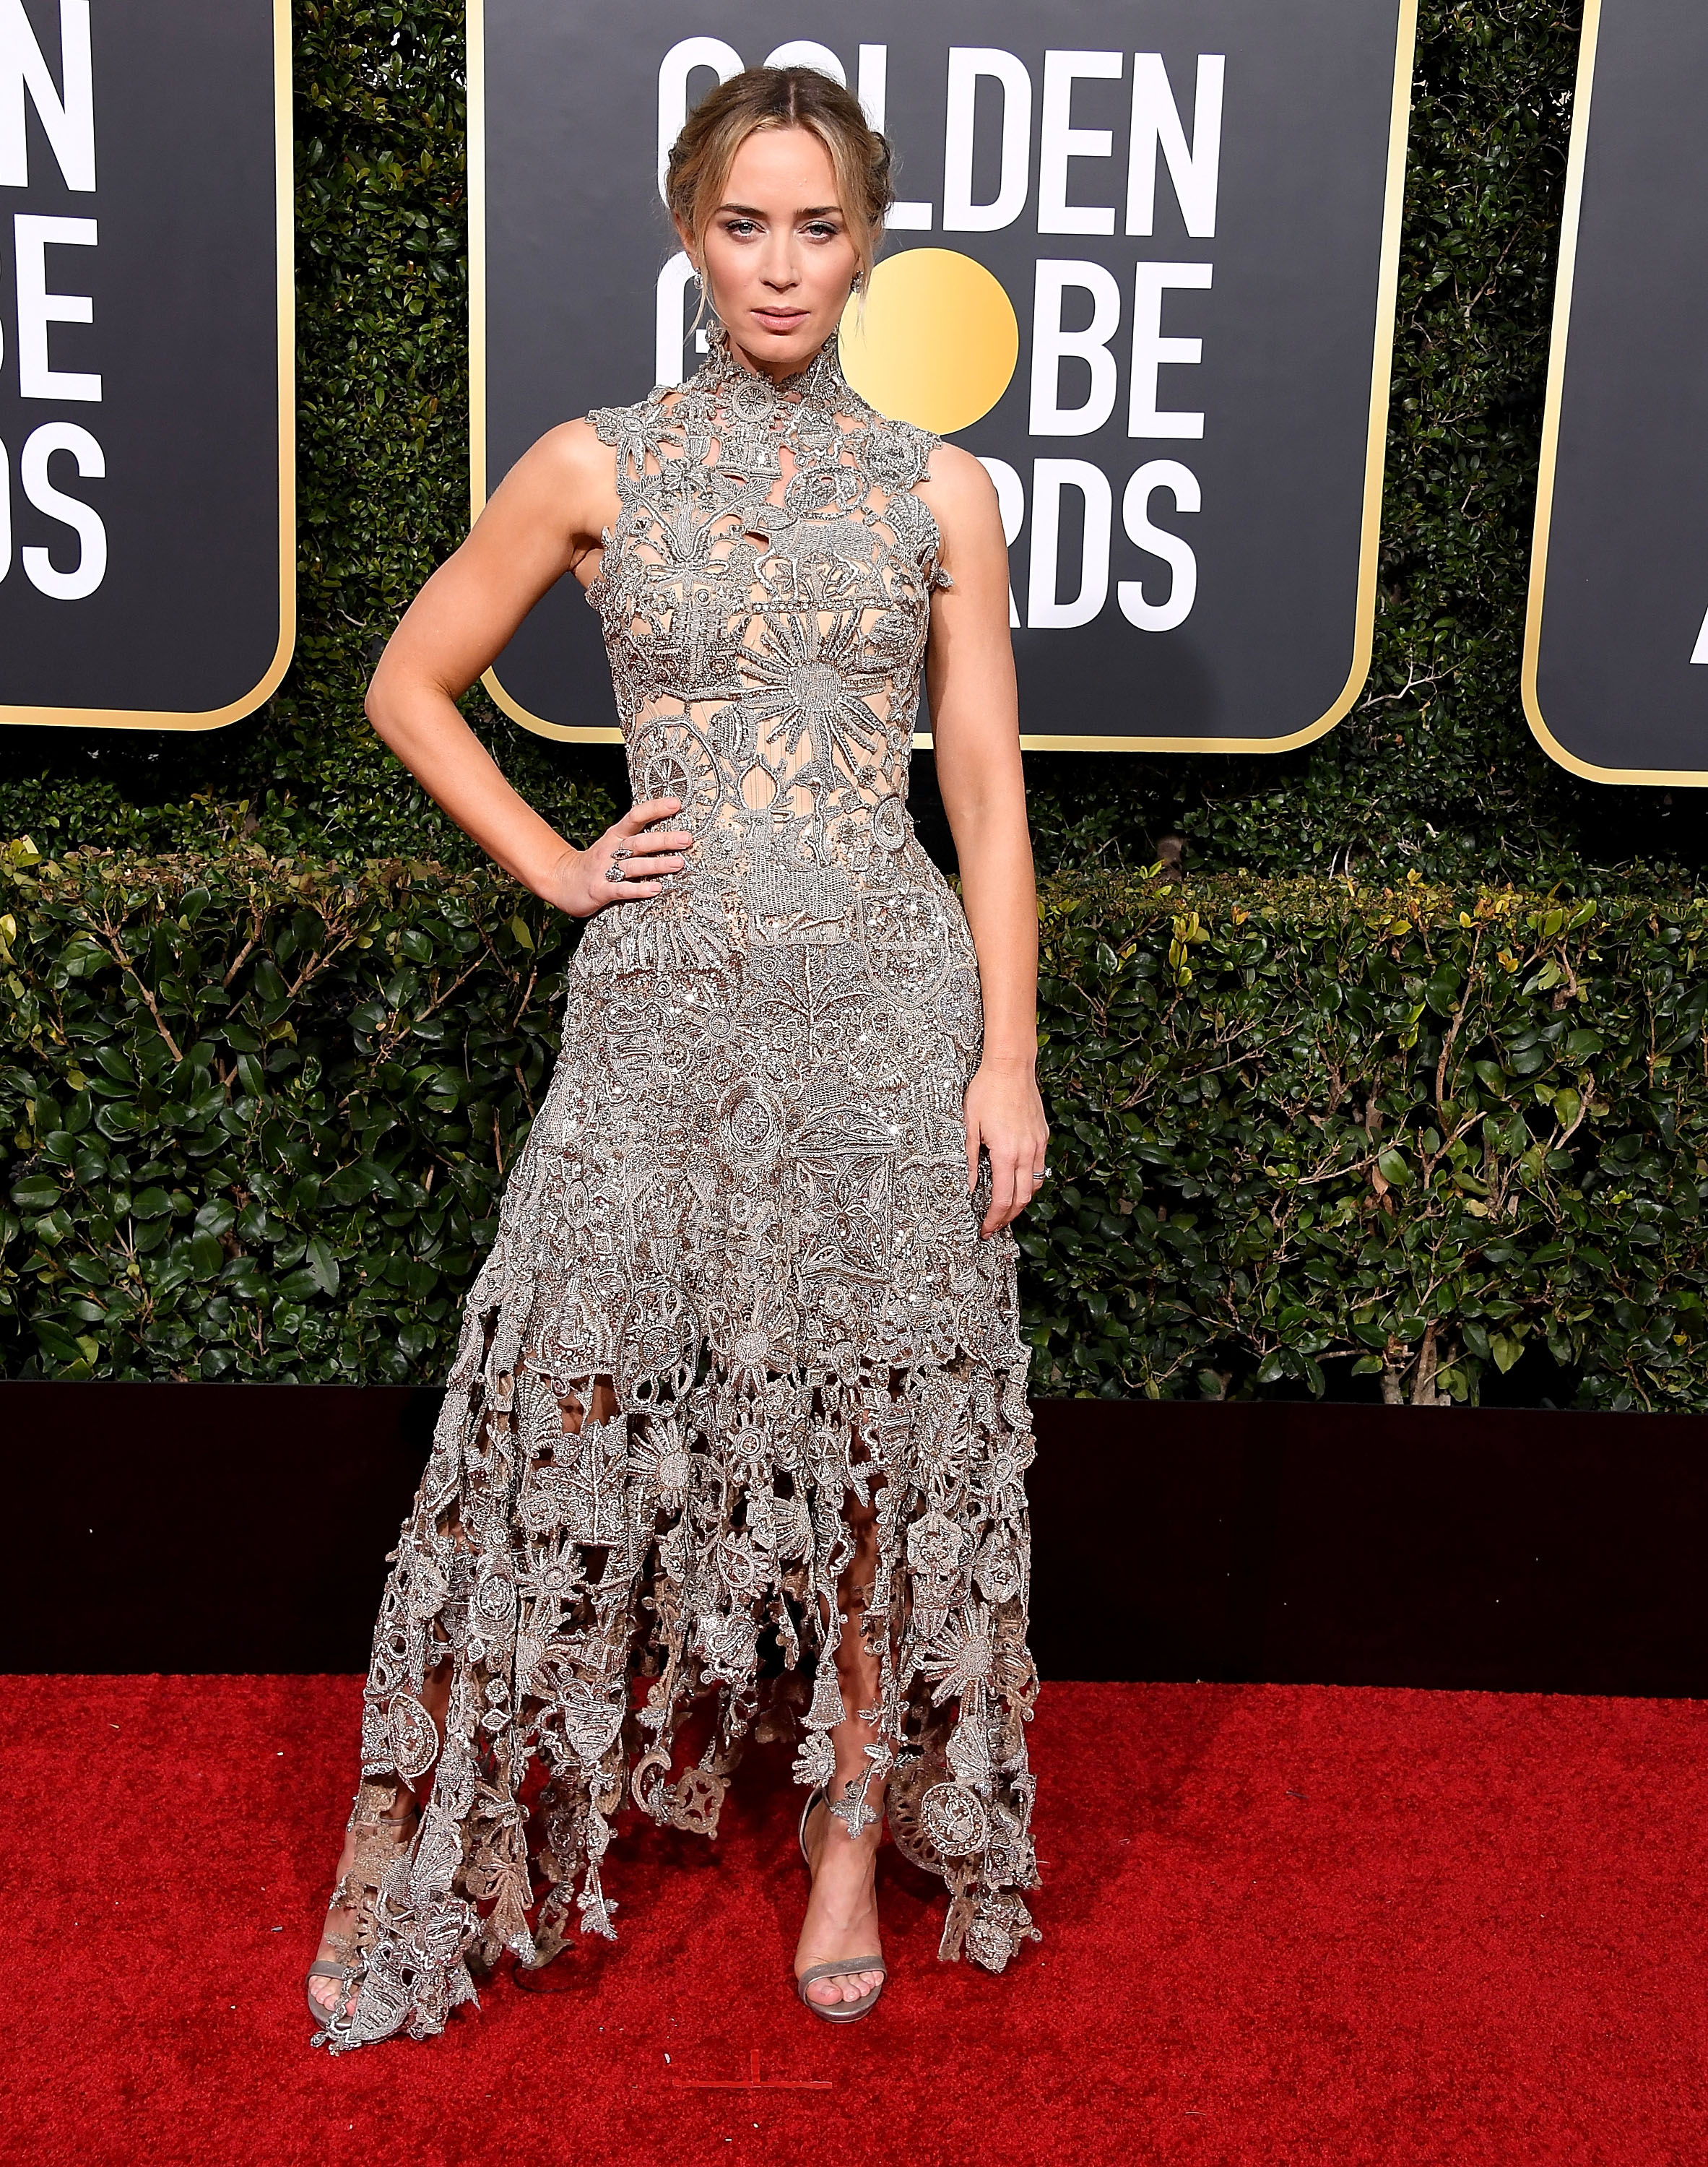 gettyimages 1078671562 Emily Blunt Makes the Case for Understated Awards Show Style at the 2019 Golden Globes